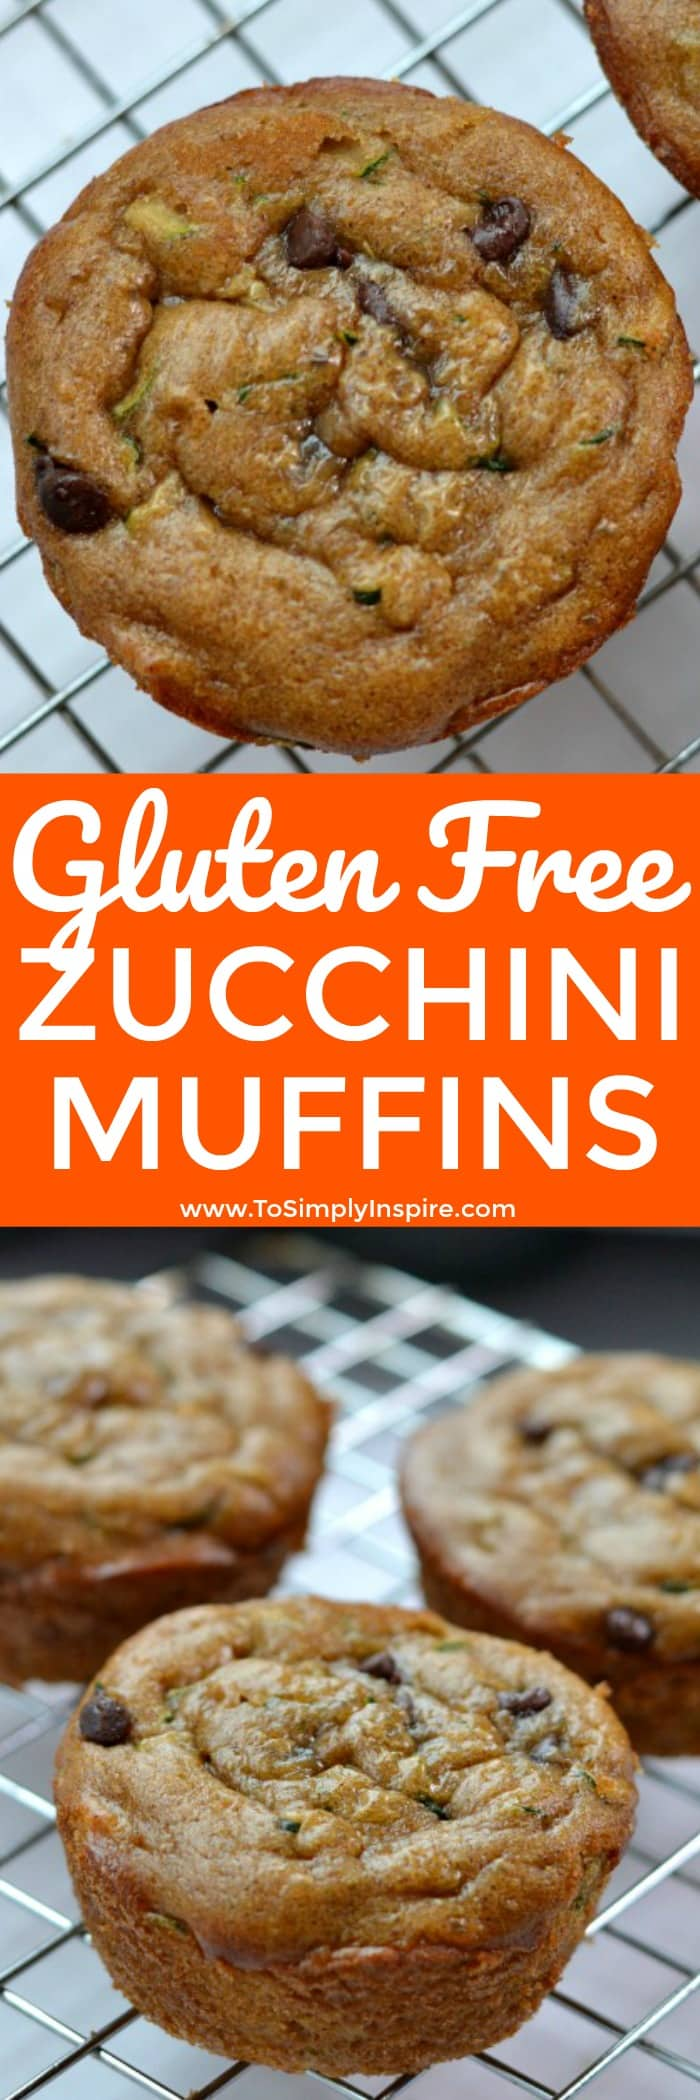 These gluten free zucchini muffins are flourless, oil-free and spectacularly moist and delicious! Made with wholesome ingredients for a perfect healthy snack.